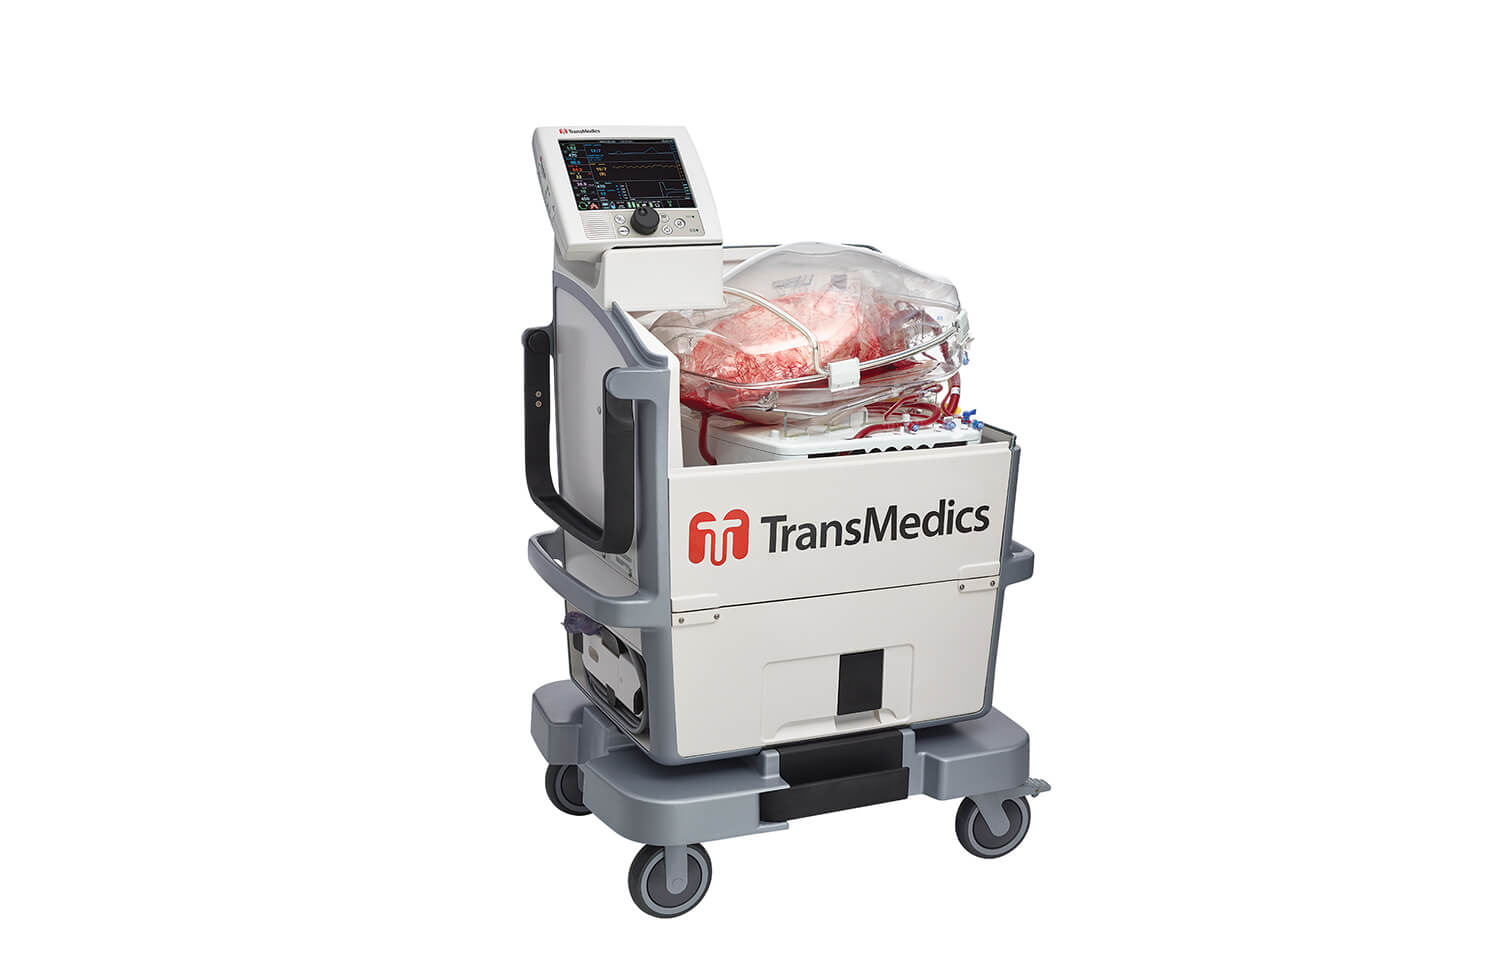 The TransMedics OCS Lung System maintains donor lungs at a steady body temperature.